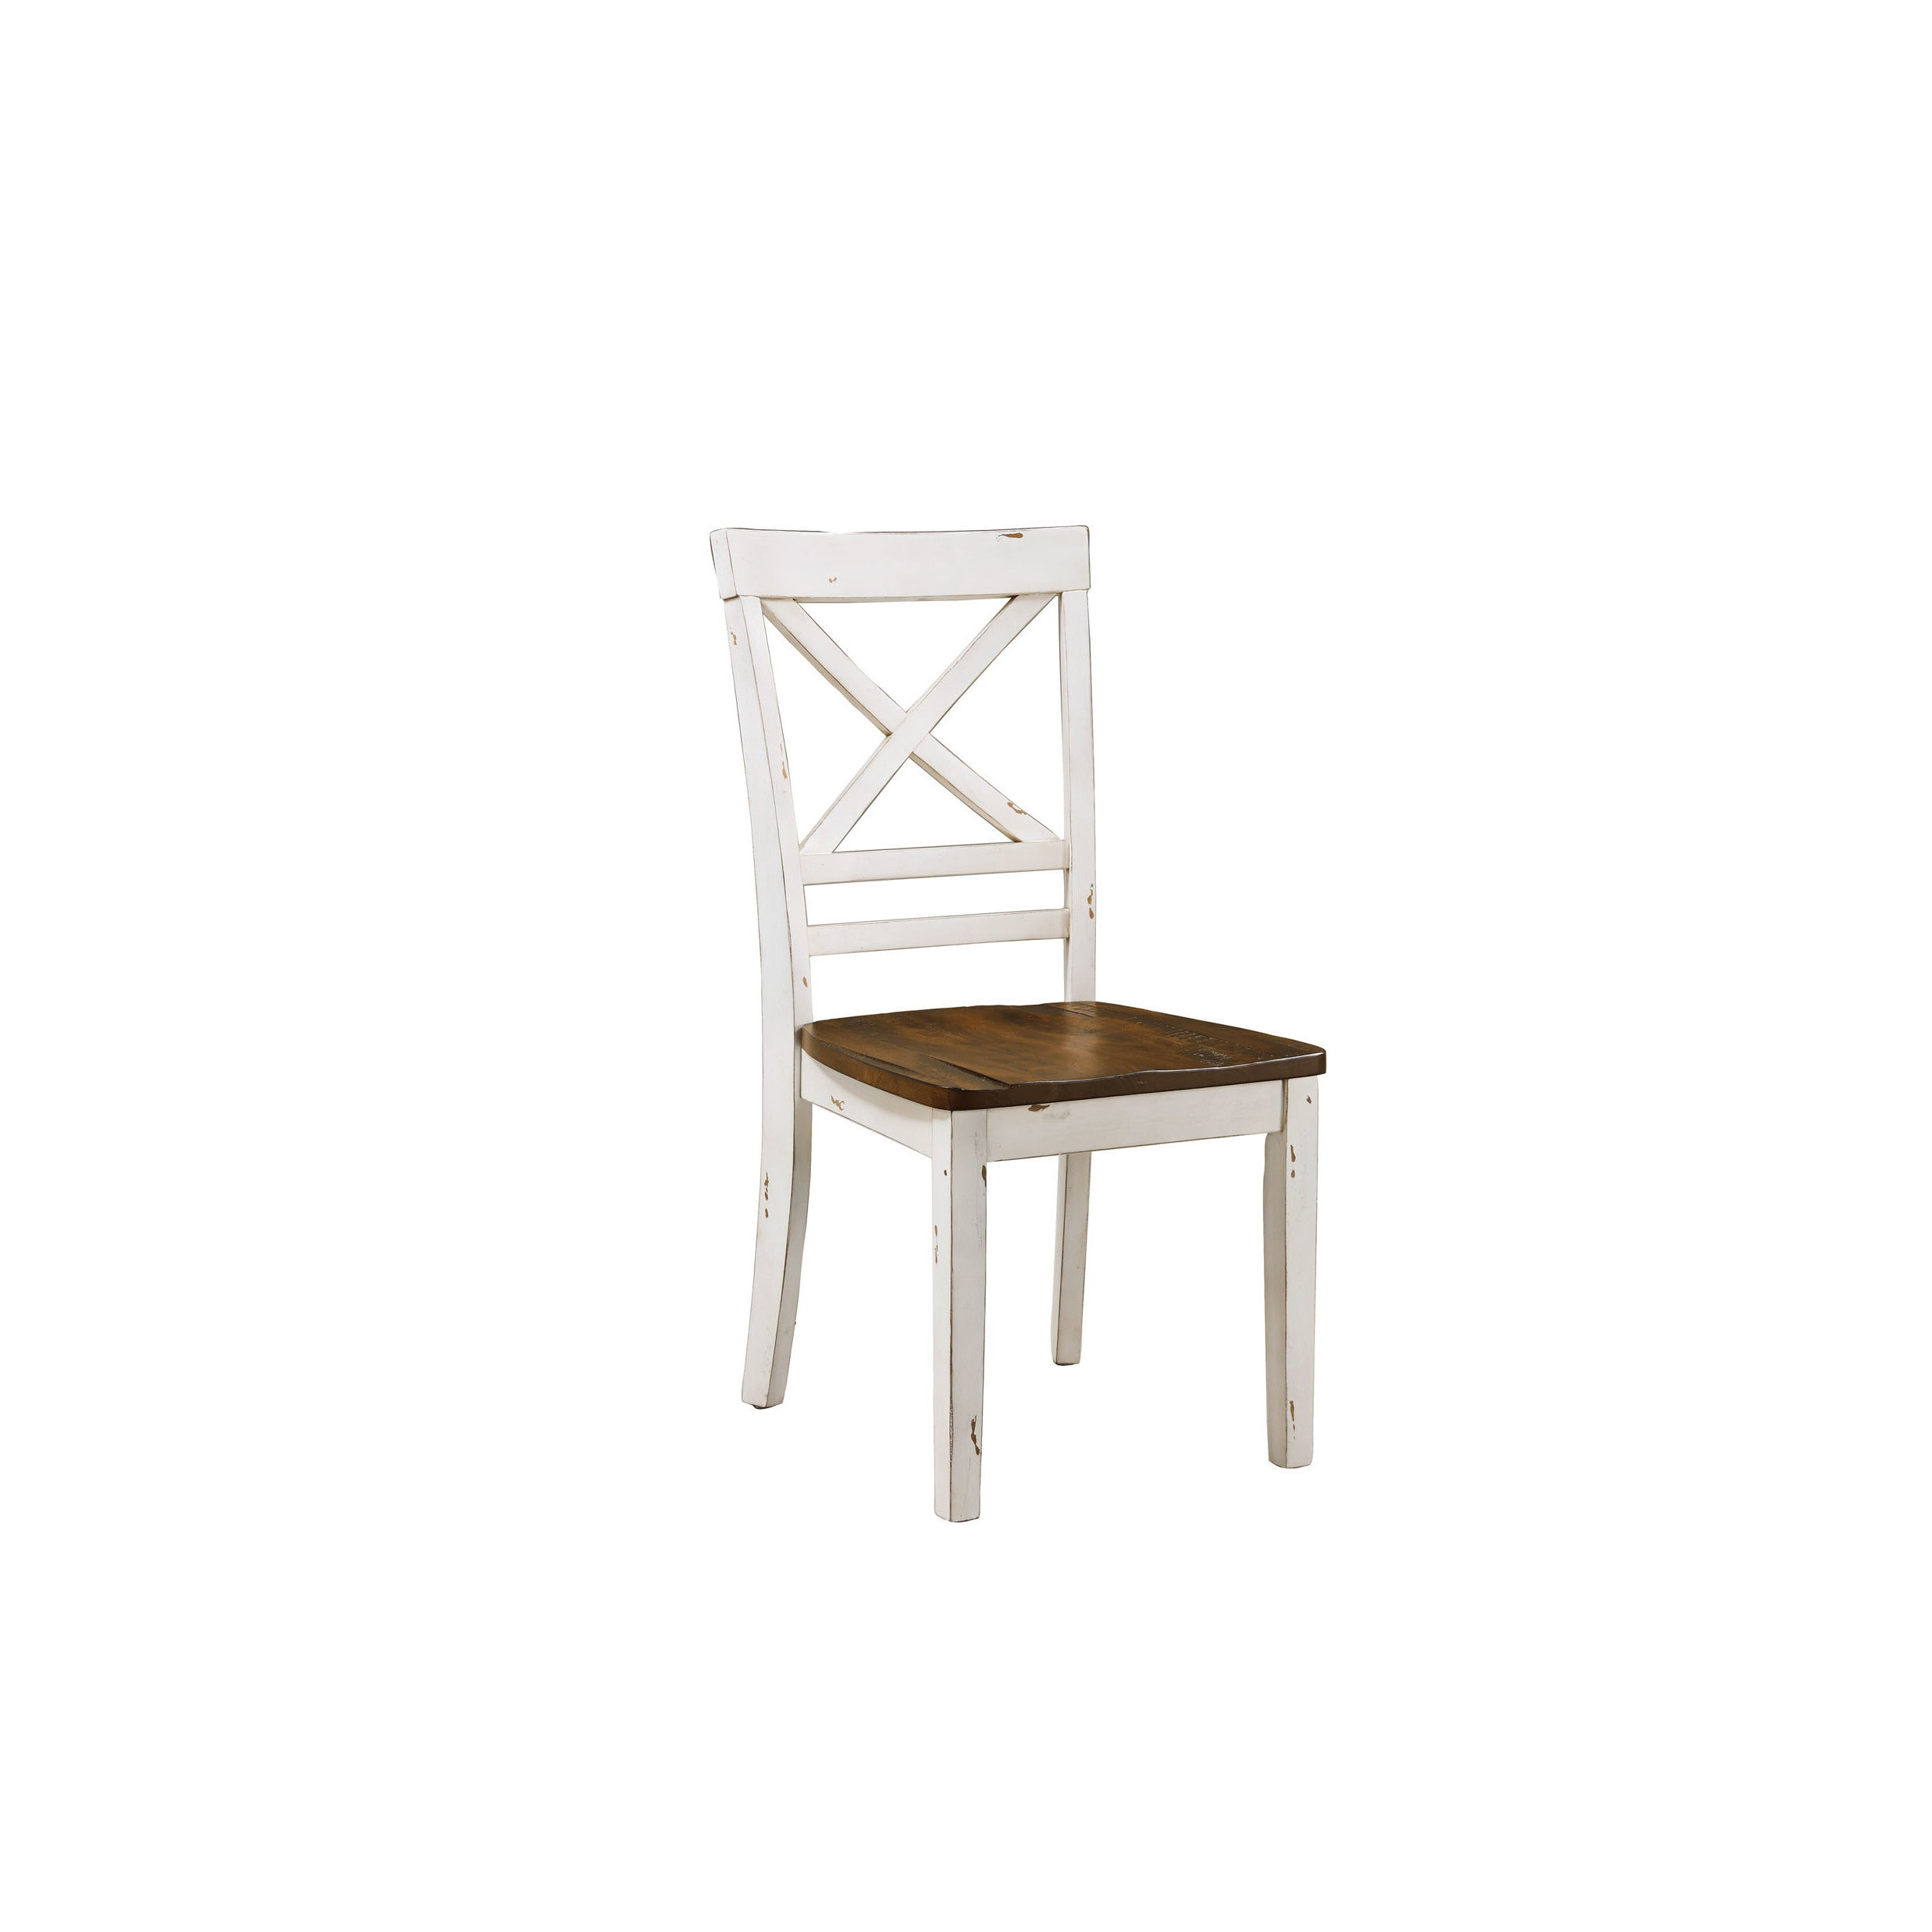 Standard Furniture Amelia Brown And White Wood 5 Piece Dining Table And Chairs Set Overstock 17178445